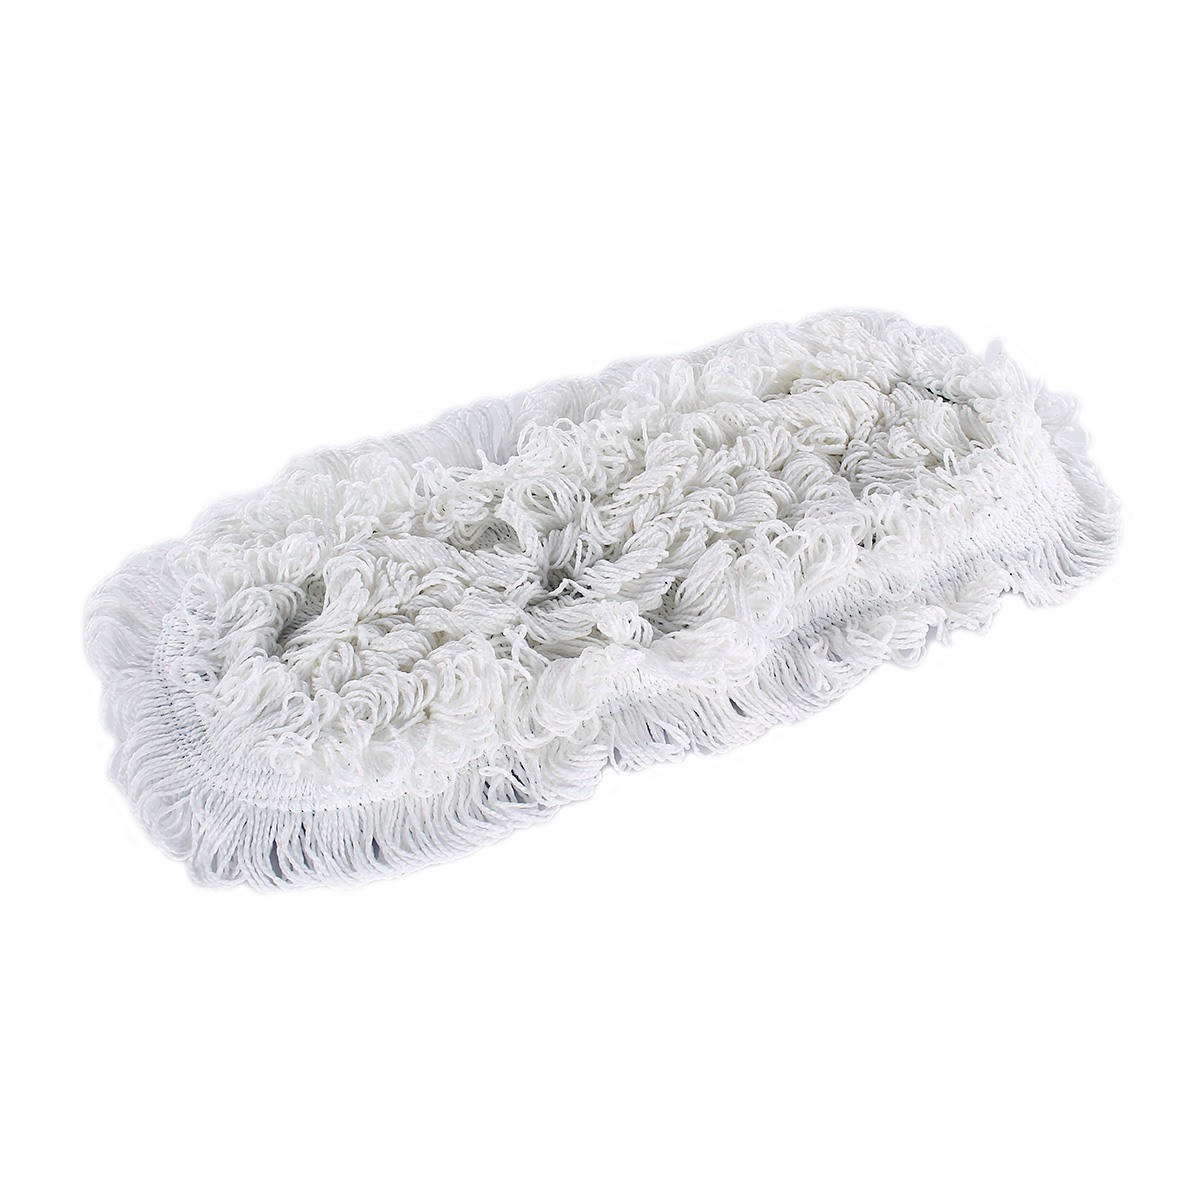 24 Quot Floor Finish Flat Wax Applicator Mop White With